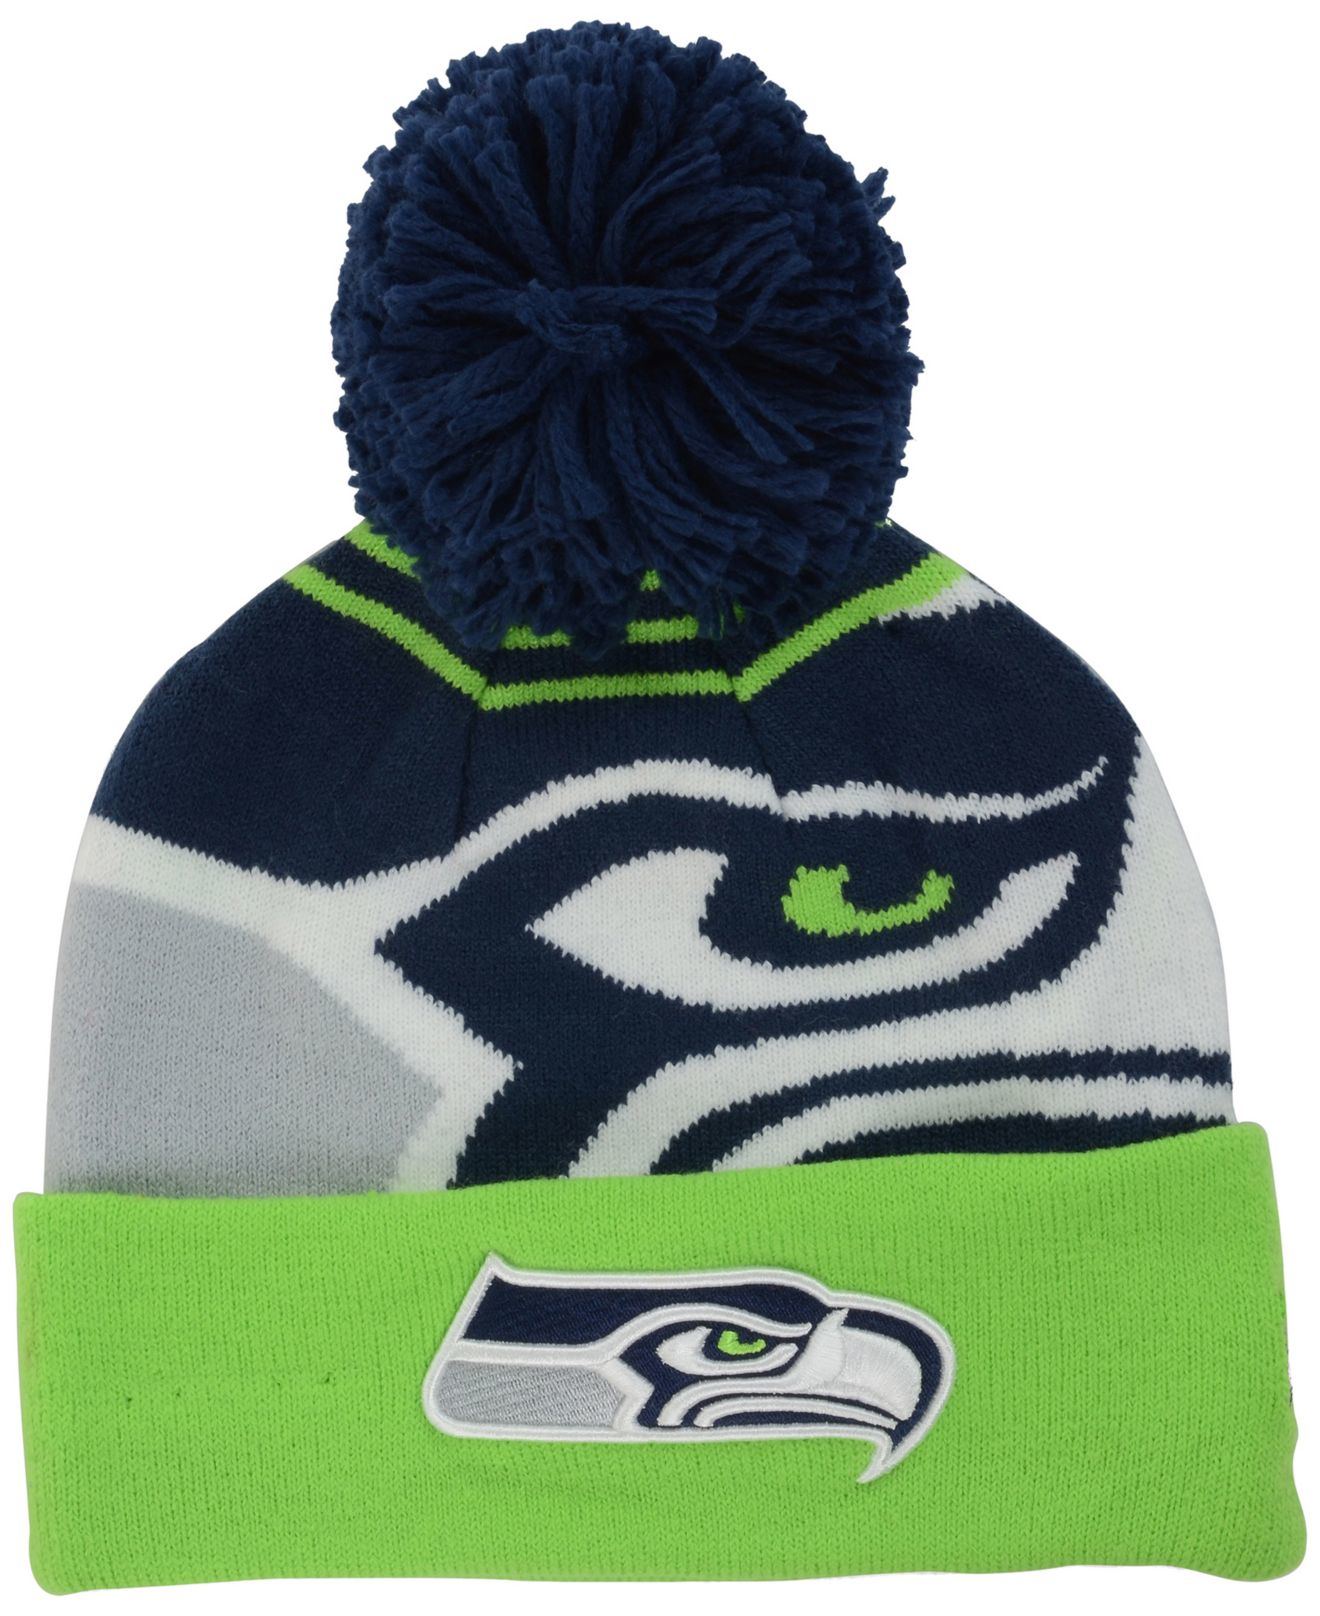 0c7357f716f italy new era seattle seahawks pom blizz cuffed knit hat neon green 58675  8d84f  czech lyst ktz seattle seahawks whiz pom knit hat in green for men  b9d7e ...